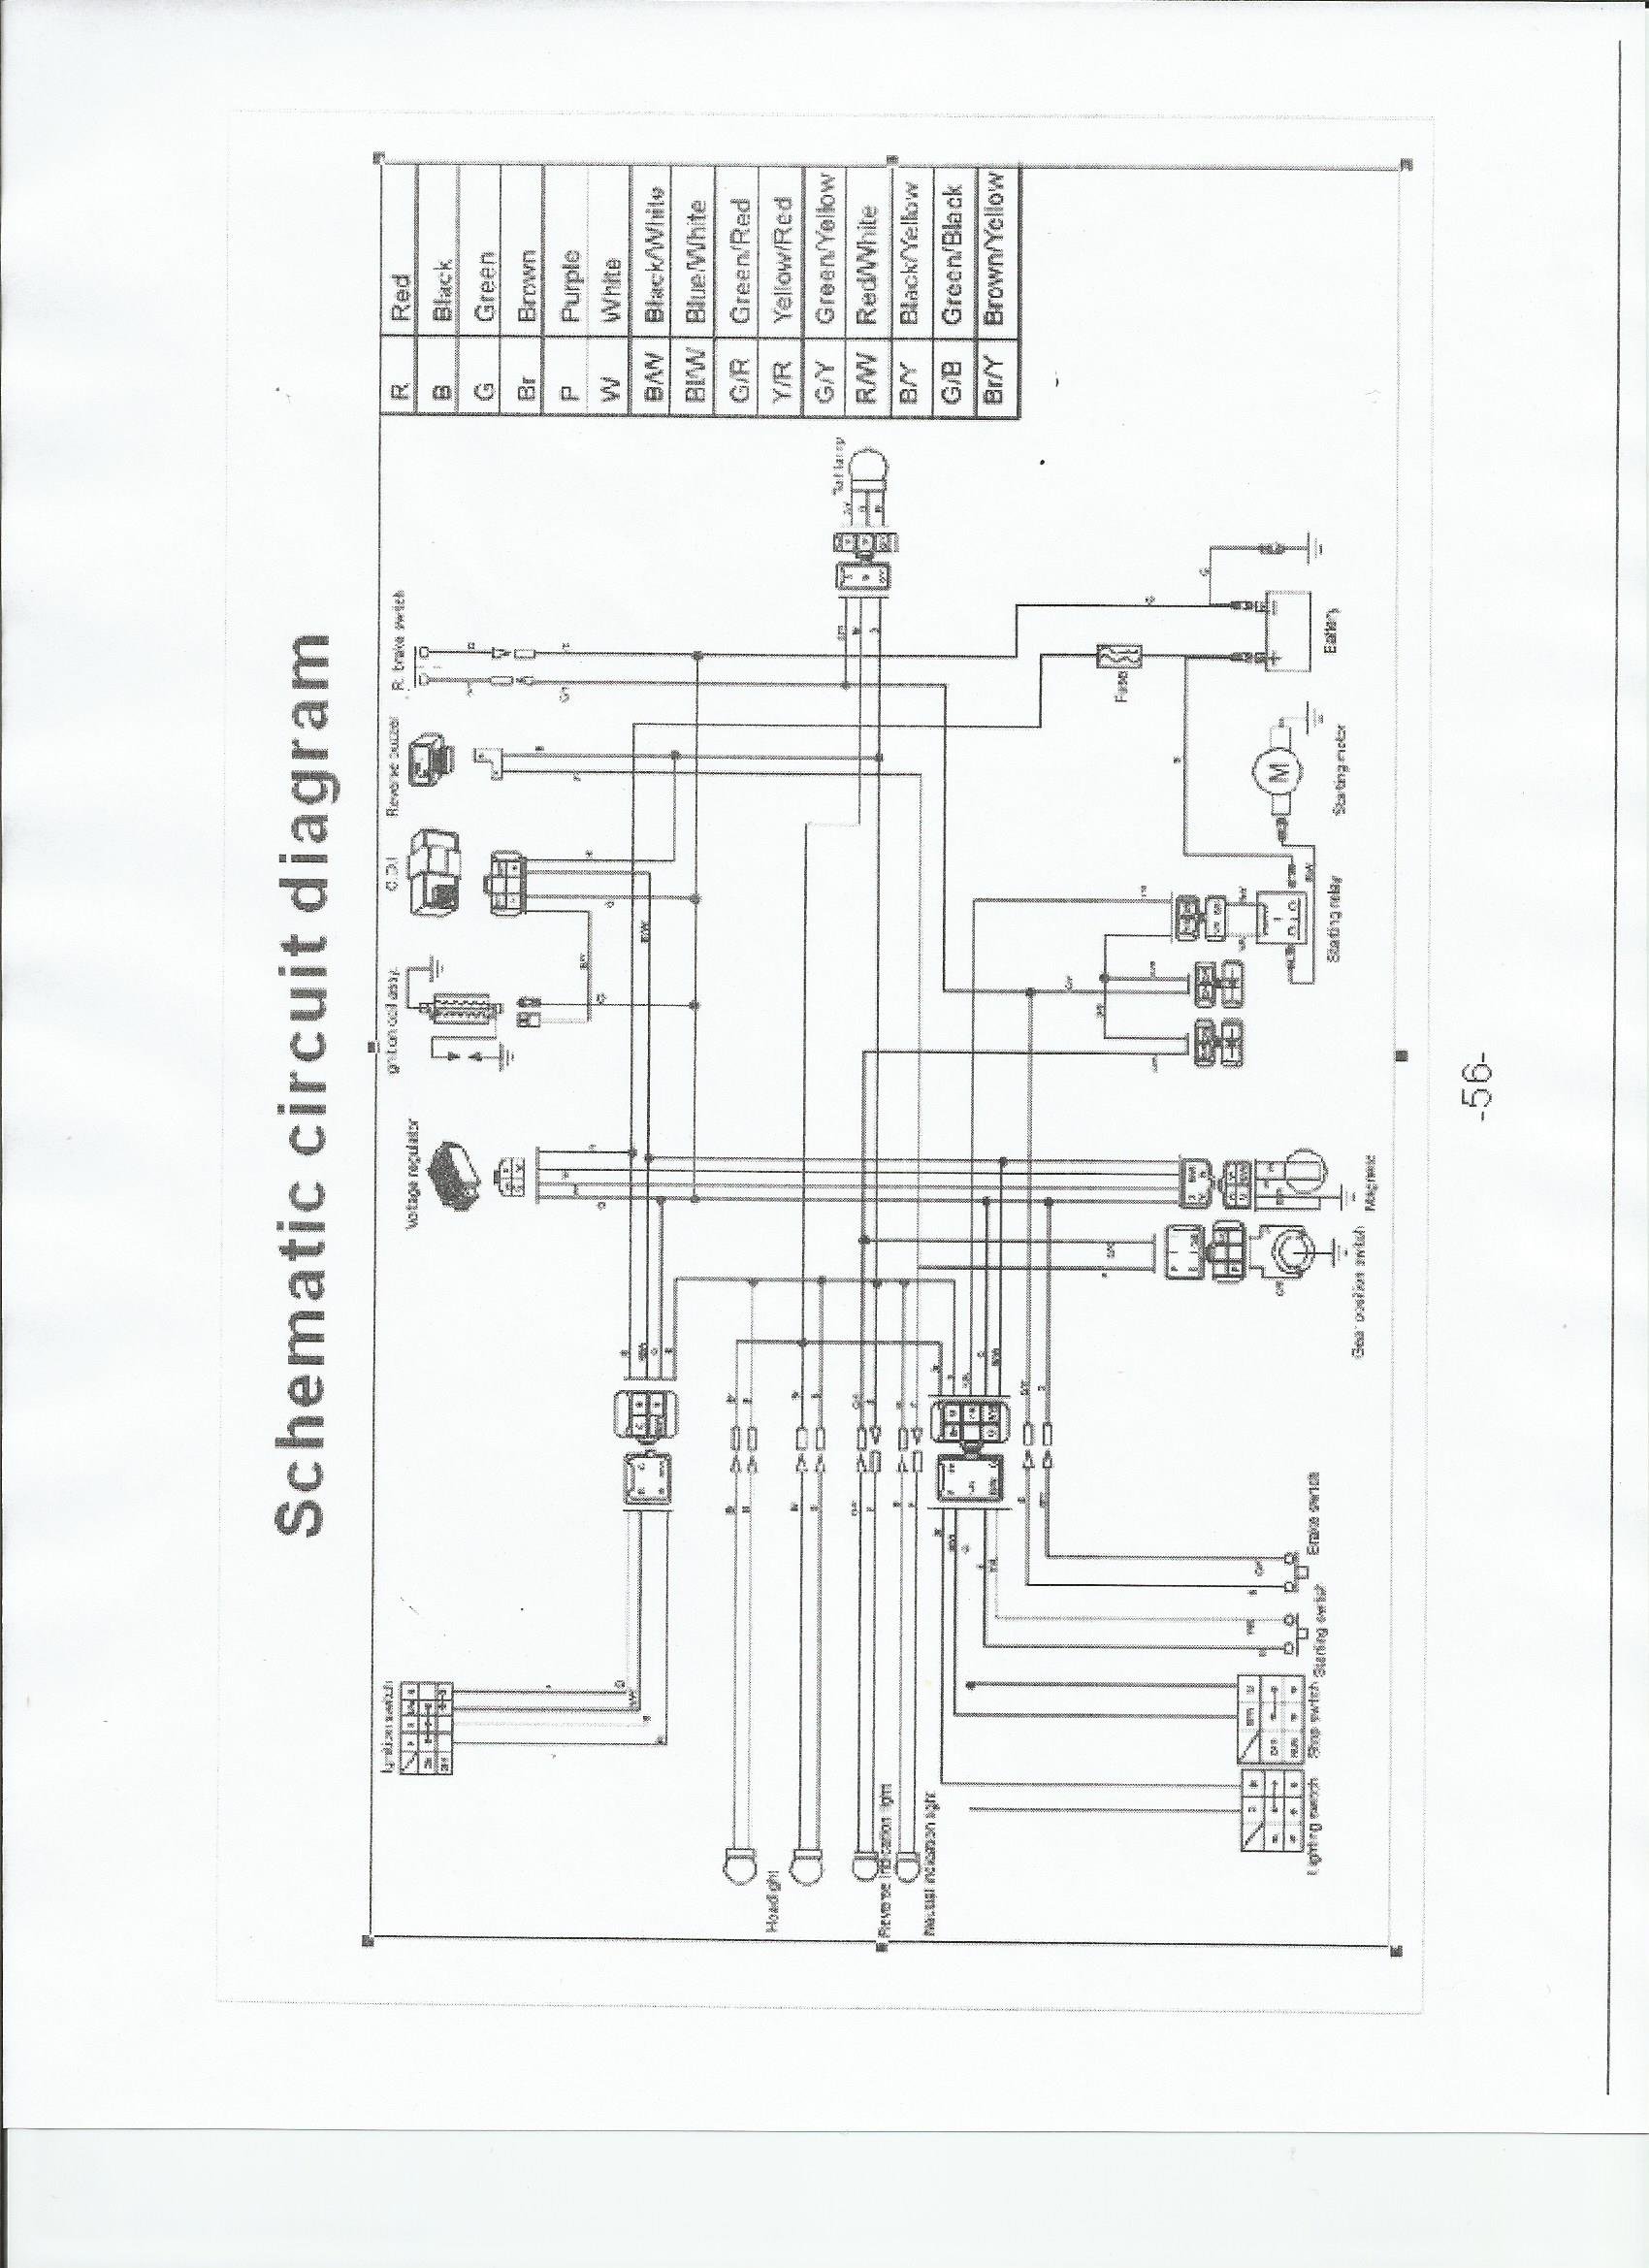 wiring diagram for nissan 350z wot